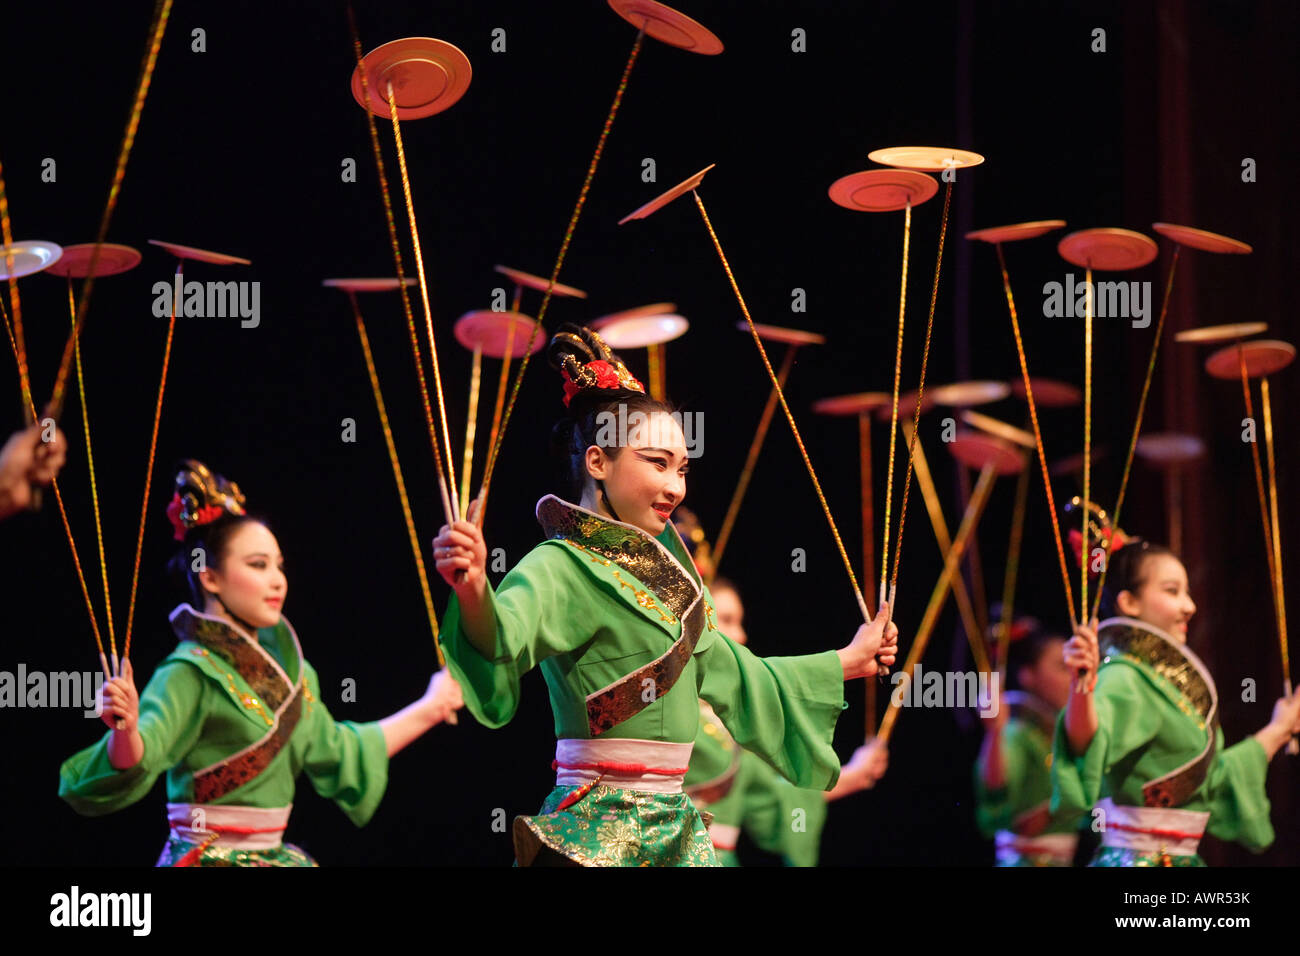 Asiatisches Geschirr Chinese Artists Juggling Dishes Stock Photo: 16638198 - Alamy